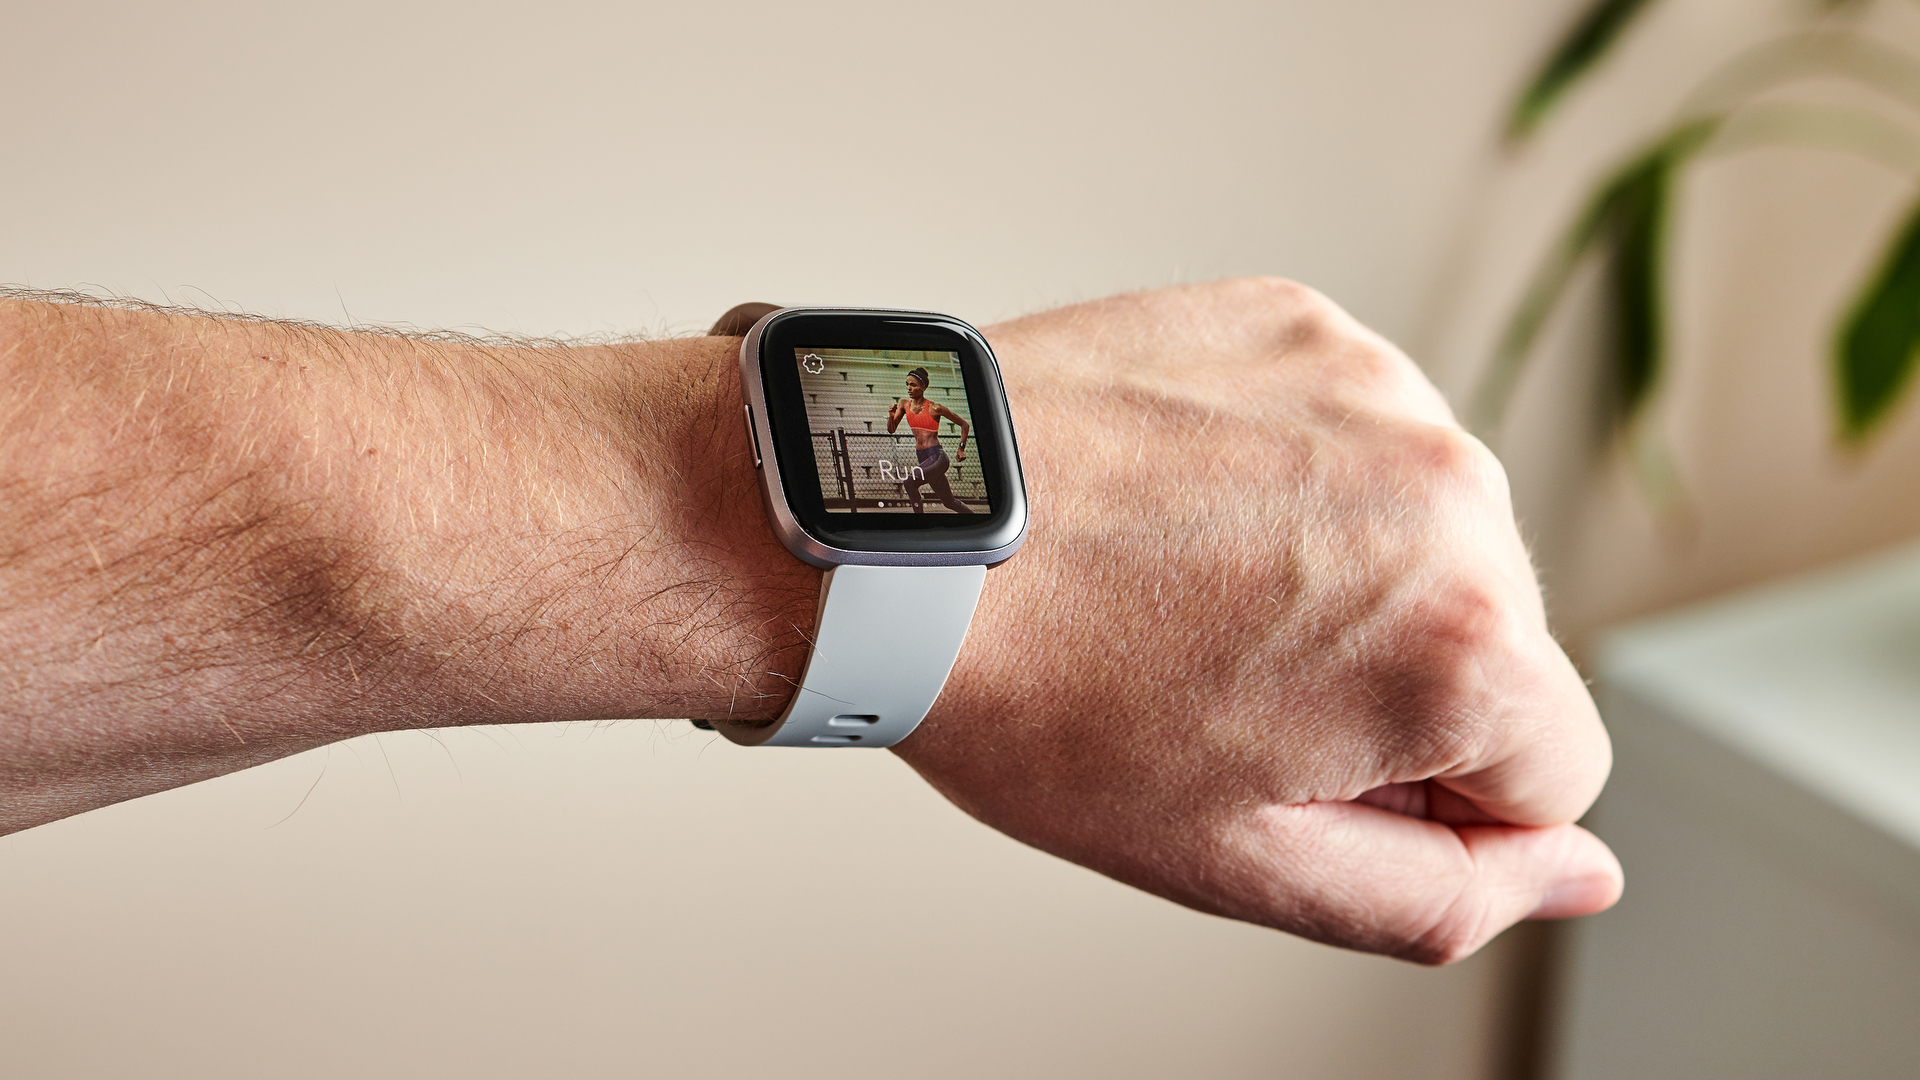 You can select the exercise routine you want for the Versa 2 to start logging data